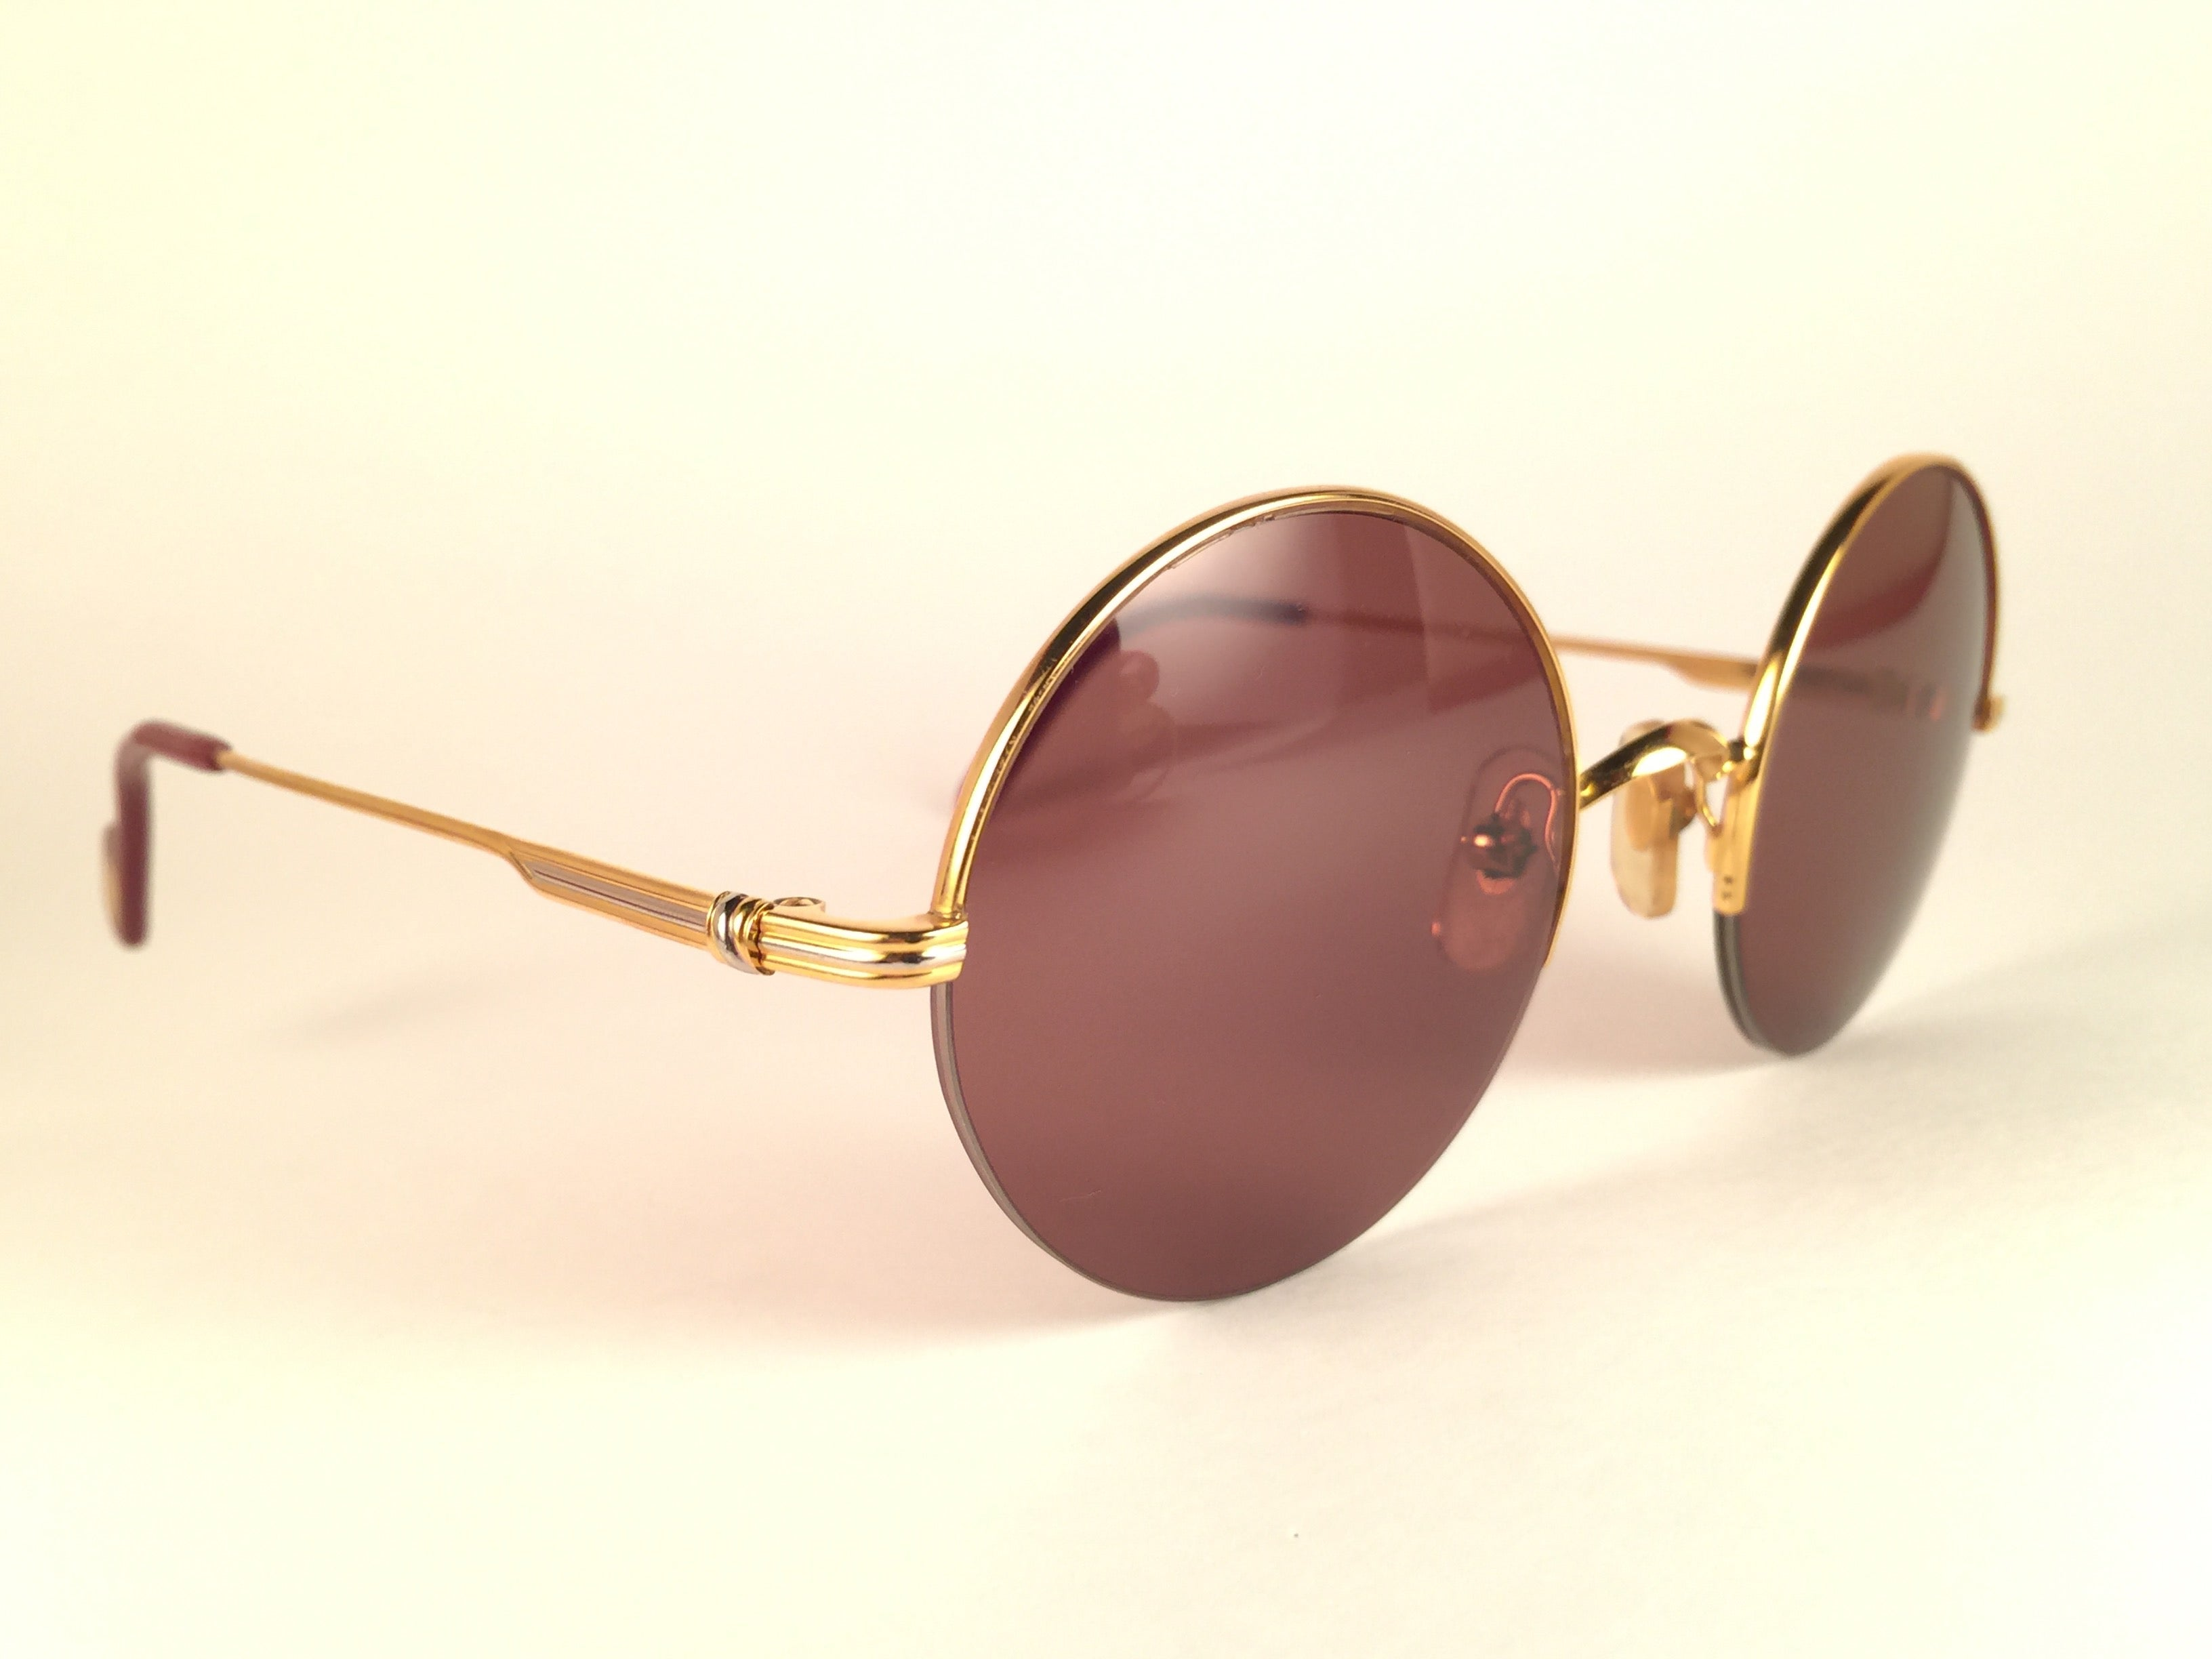 beb3e382a New Cartier Mayfair Round Half Frame Gold 47mm Brown Lens France Sunglasses  For Sale at 1stdibs